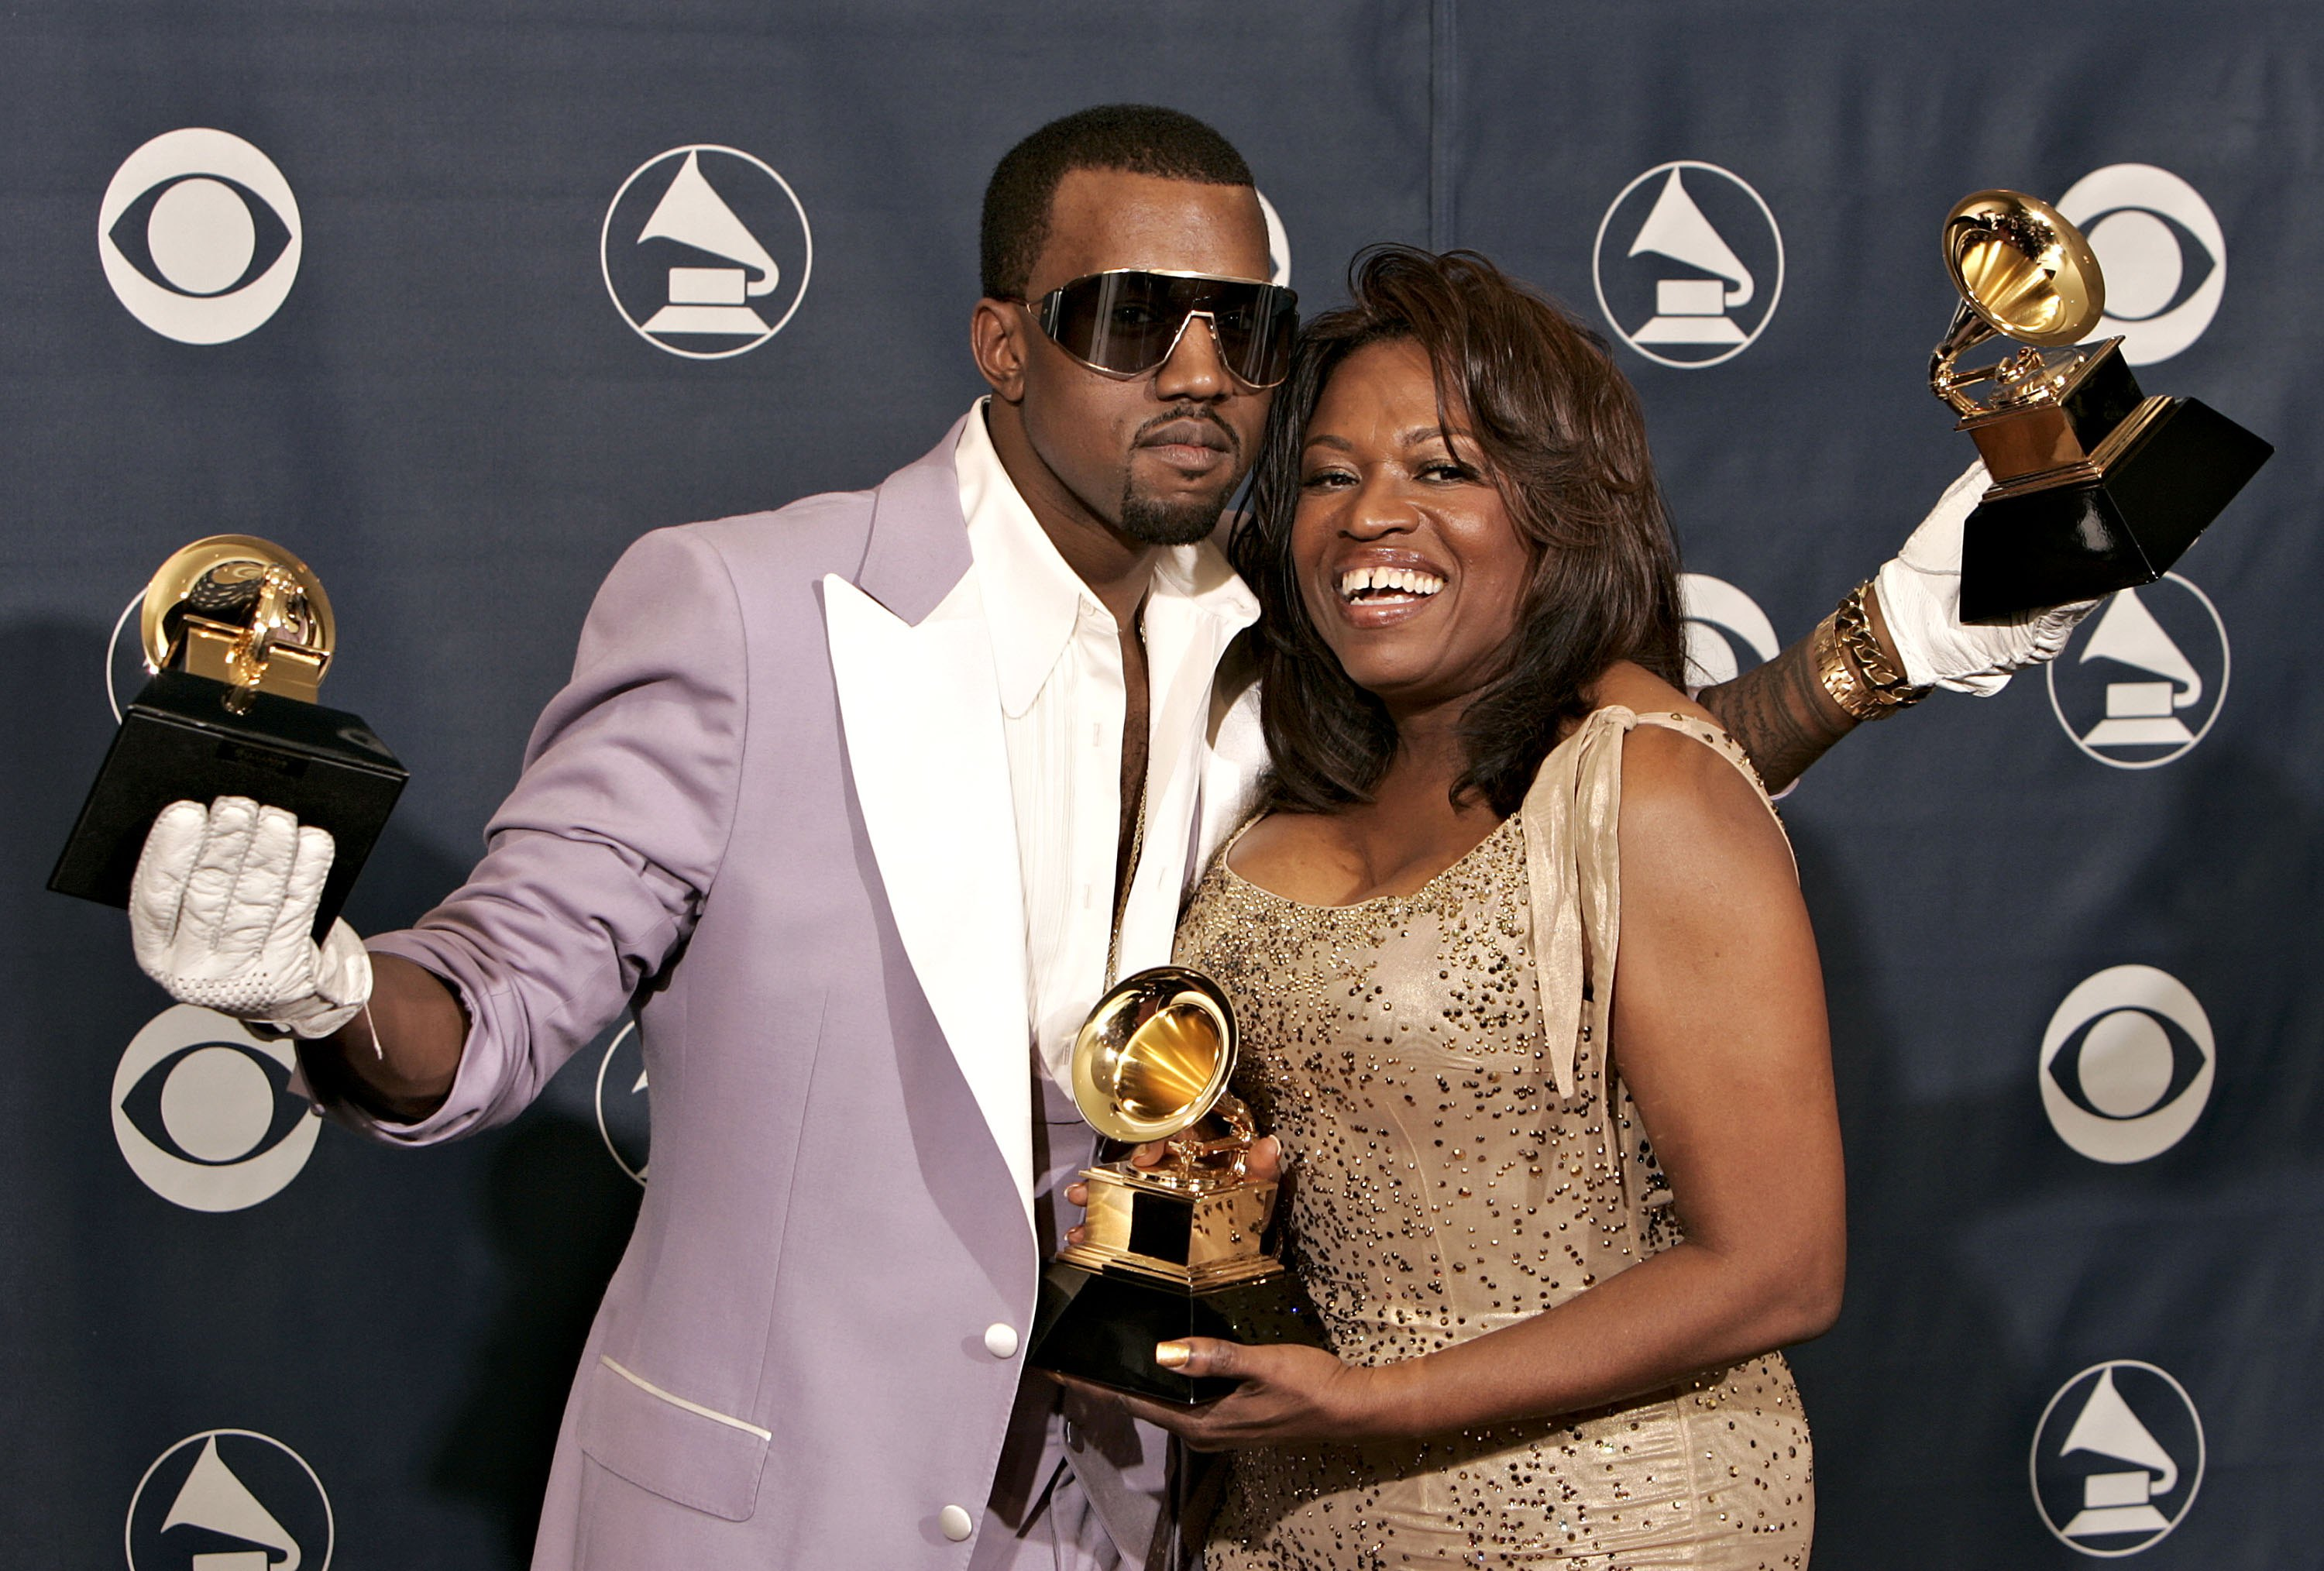 Singer Kanye West with his awards for Best Rap Song, Best Rap Solo Performance and Best Rap Album with his mother Donda West pose in the press room at the 48th Annual Grammy Awards at the Staples Center on February 8, 2006 in Los Angeles, California. (Photo by Kevin Winter/Getty Images)